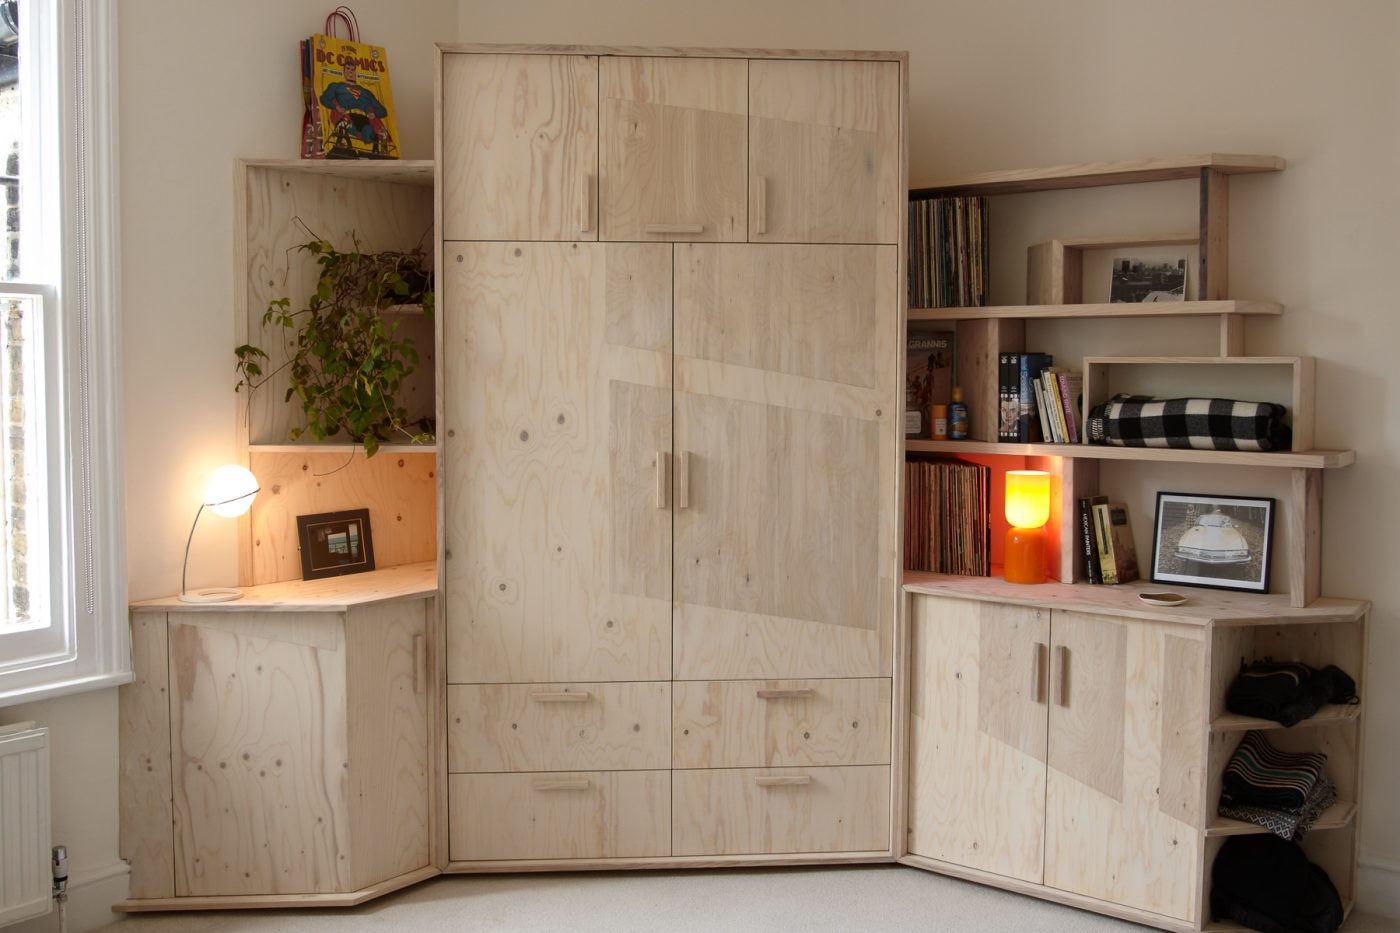 Jan Hendzel Studio 12 oclock cabinet WEB